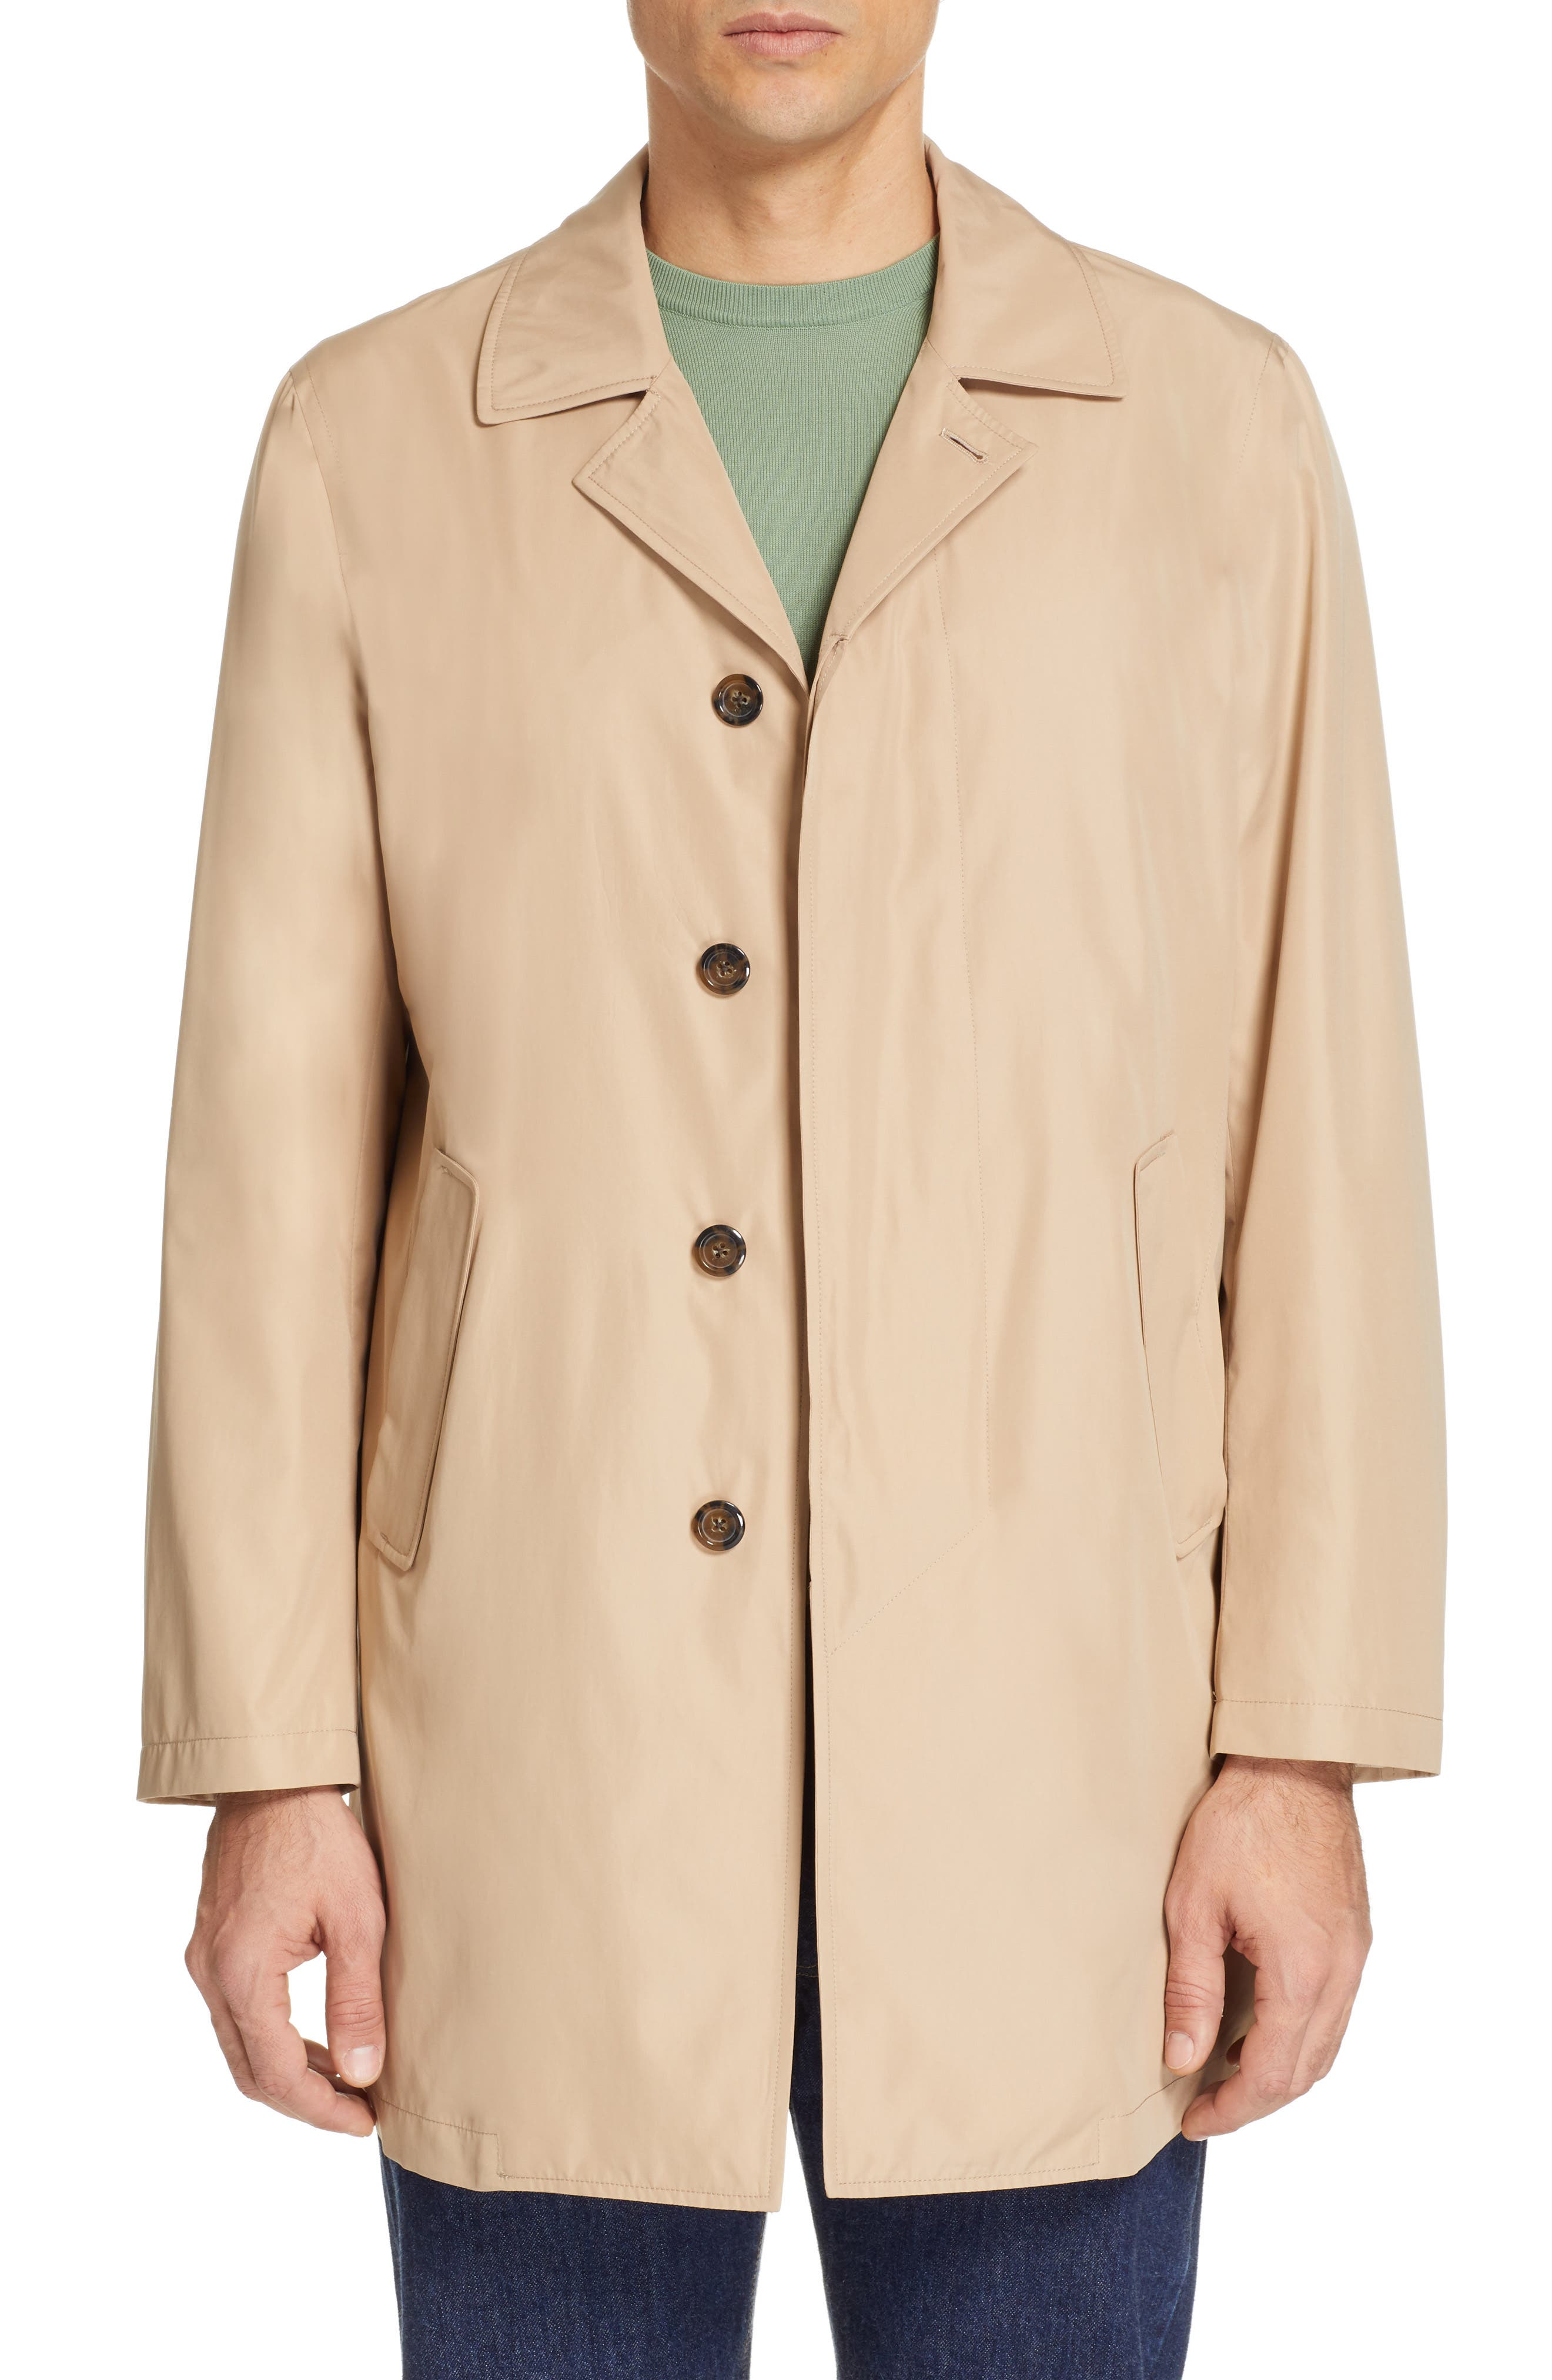 CANALI, Lightweight Overcoat, Main thumbnail 1, color, BEIGE